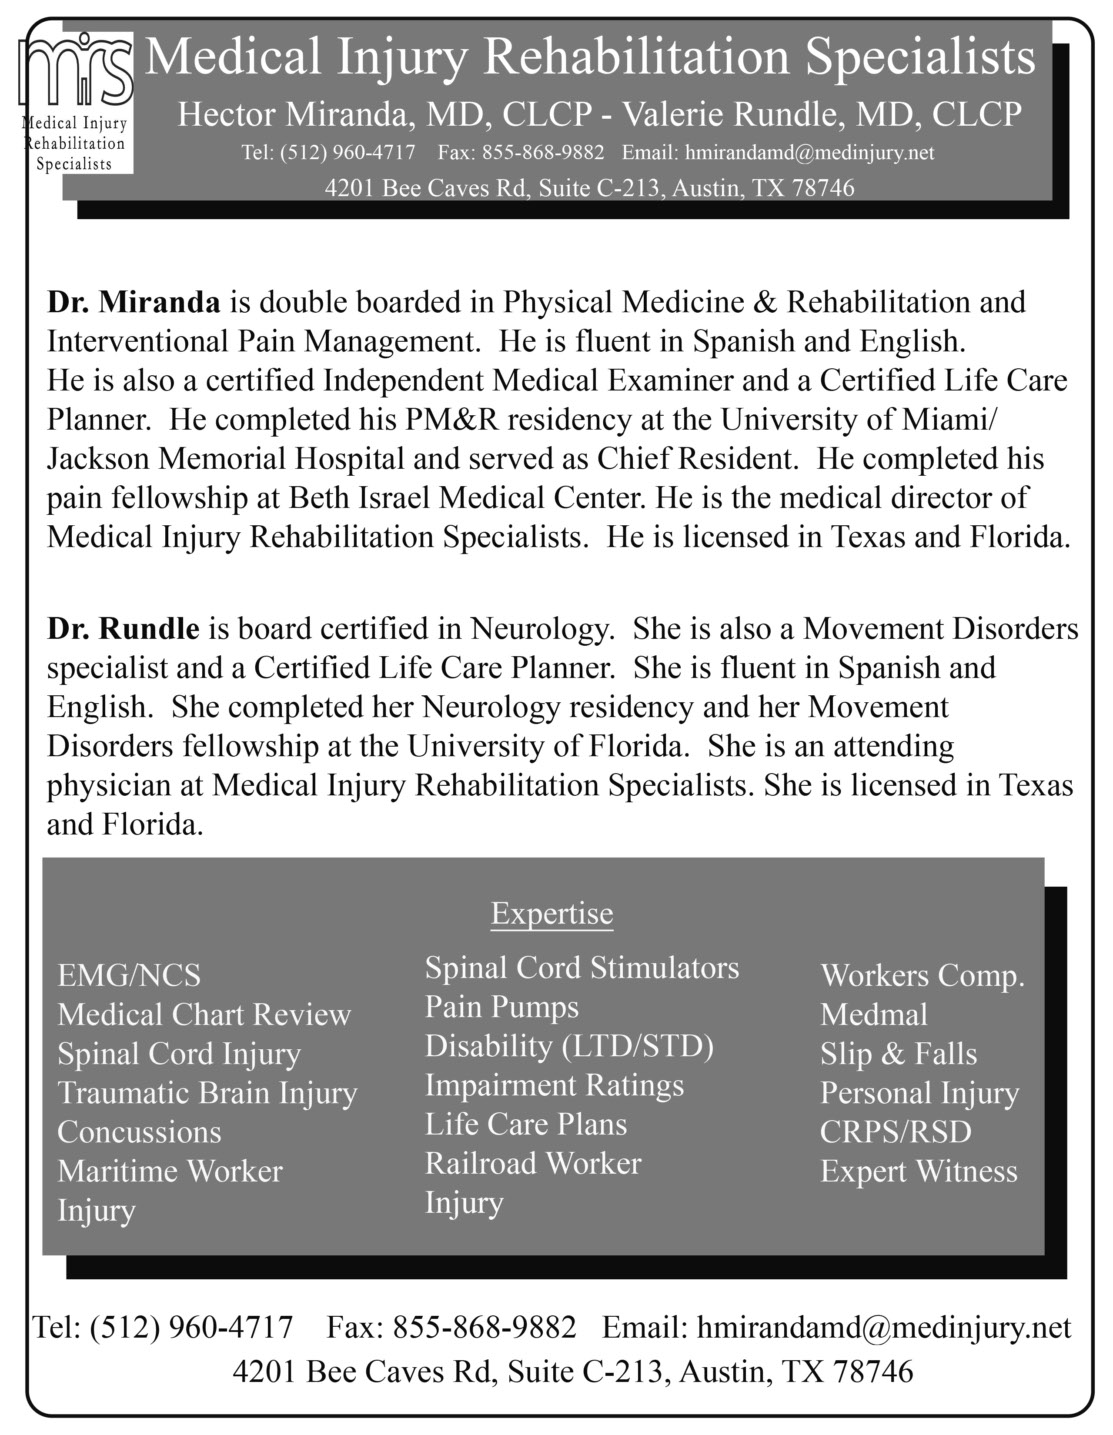 National directory of independent medical examiners pdf seak 2016 fandeluxe Images